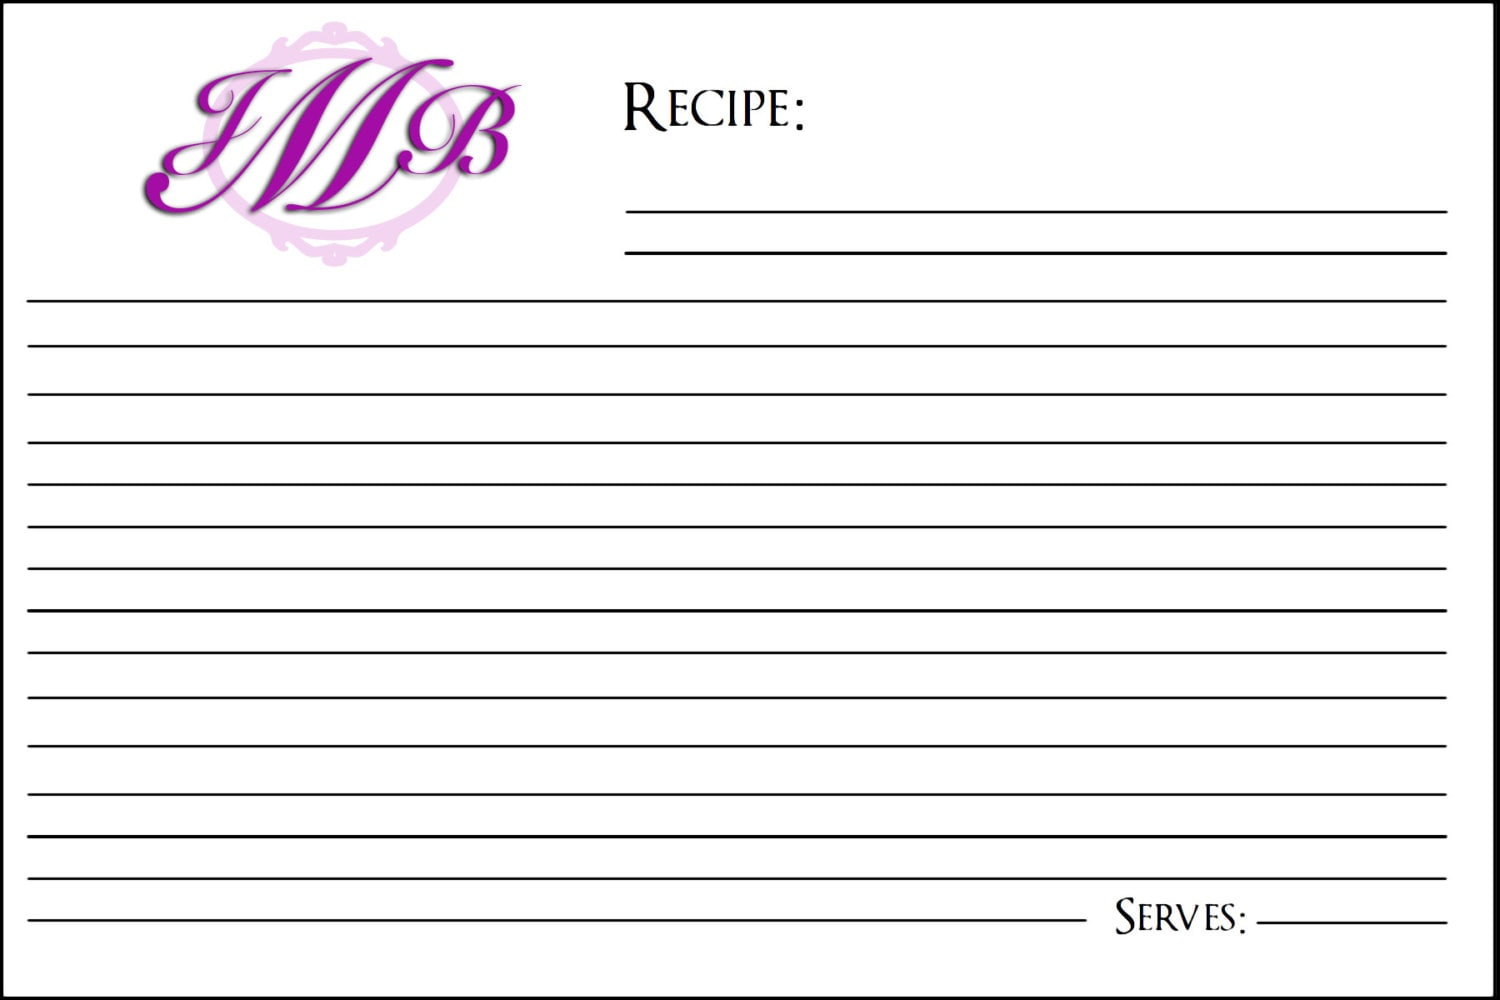 monogram recipe card template 4x6 inches by yourstrulywithlovee. Black Bedroom Furniture Sets. Home Design Ideas